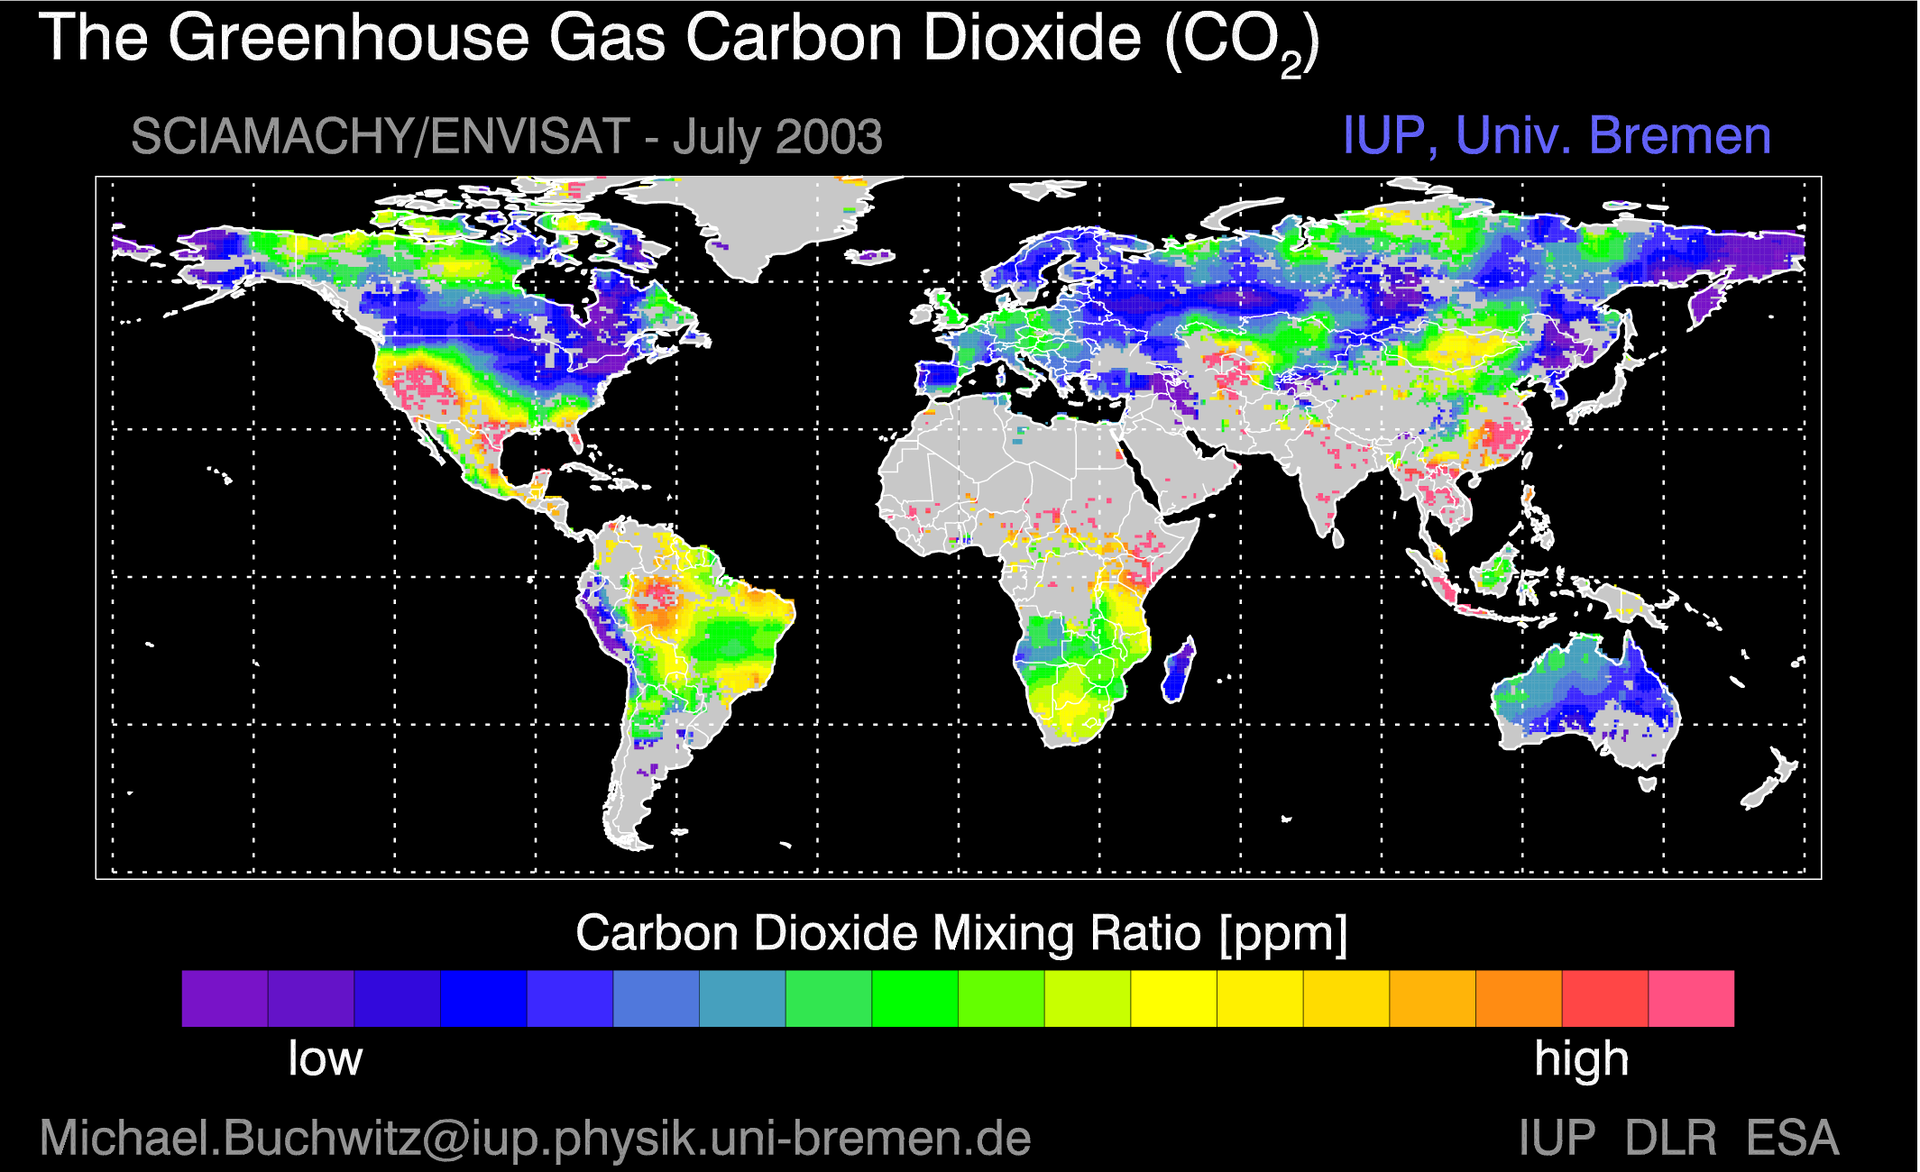 Carbon dioxide and oxygen mixing ratio